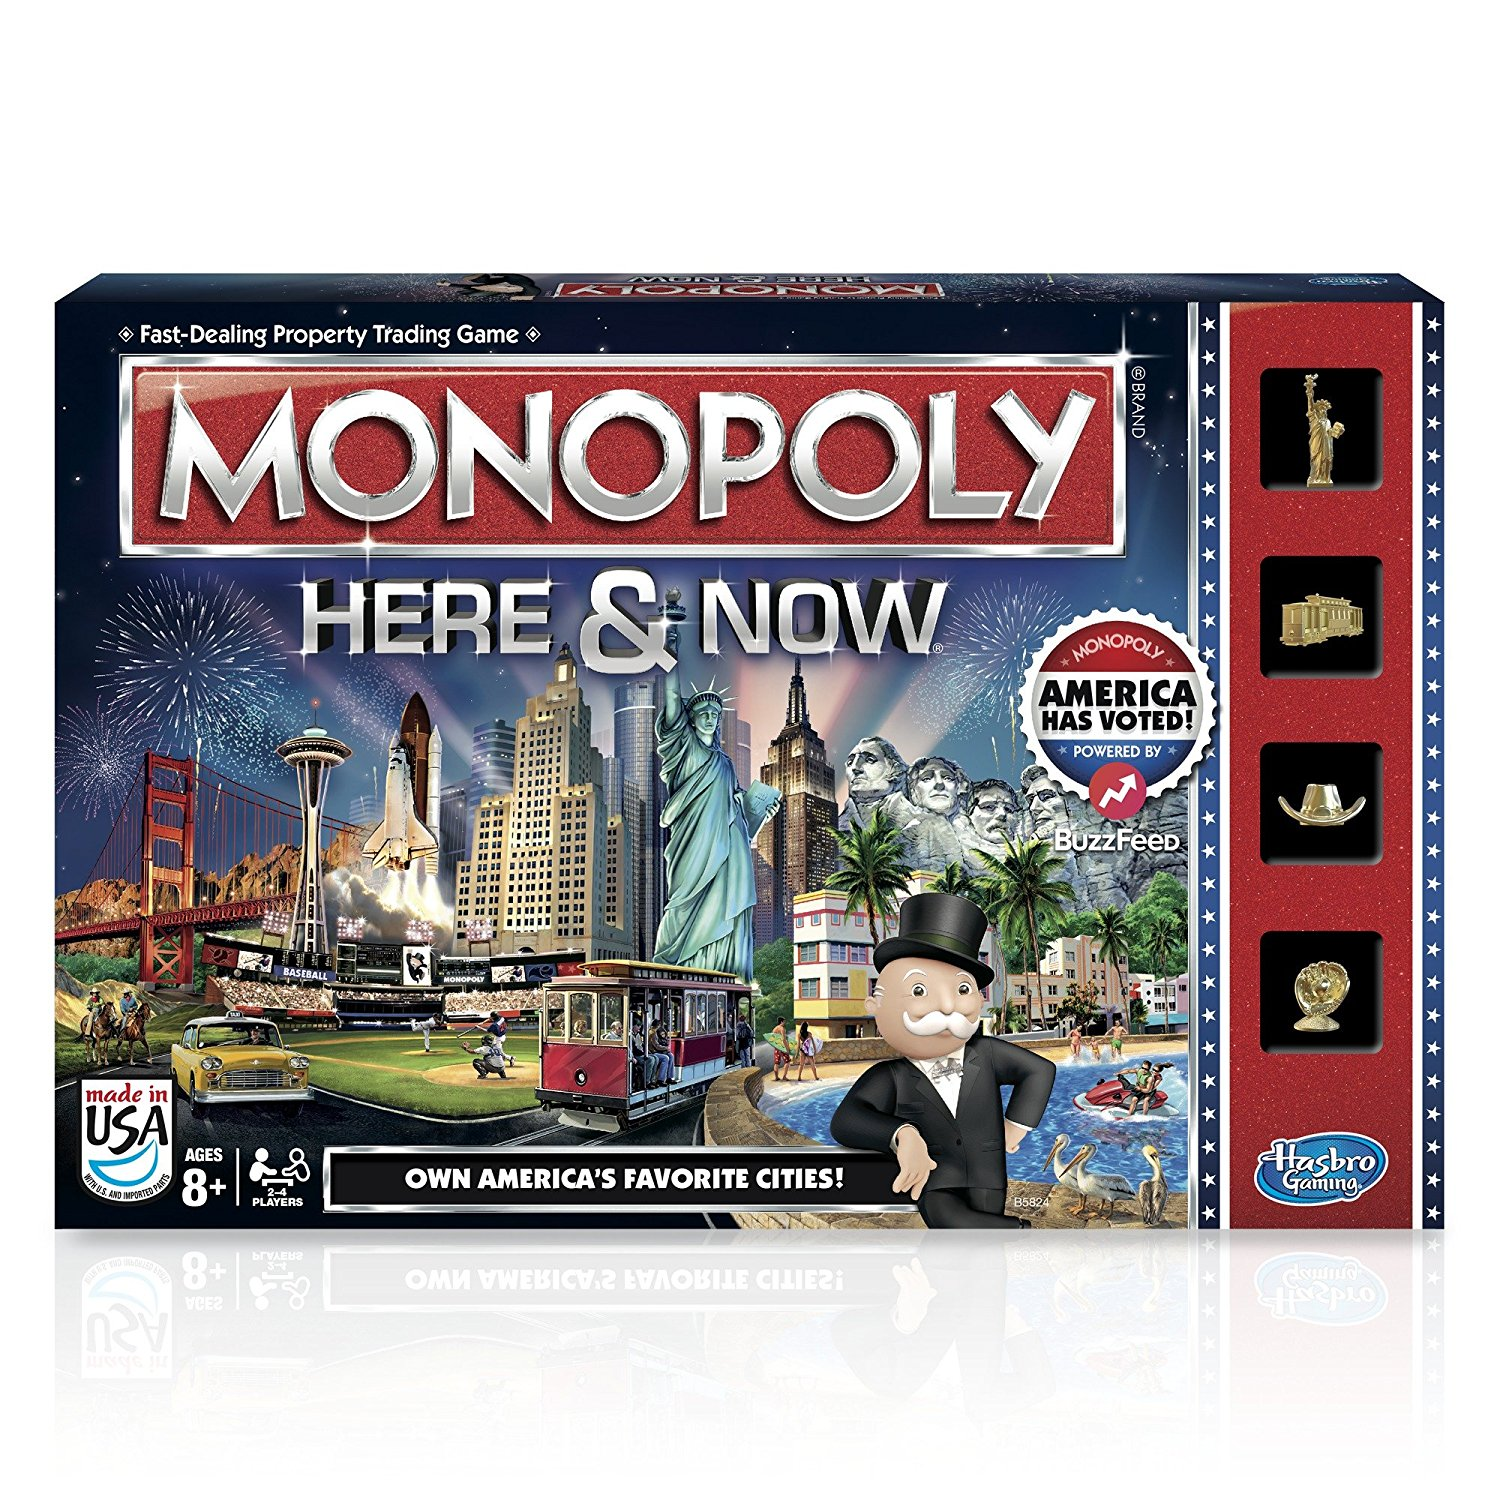 Monopoly Here & Now Game: US Edition, Ball A Import Guide Nintendo Entertainment Epic... by